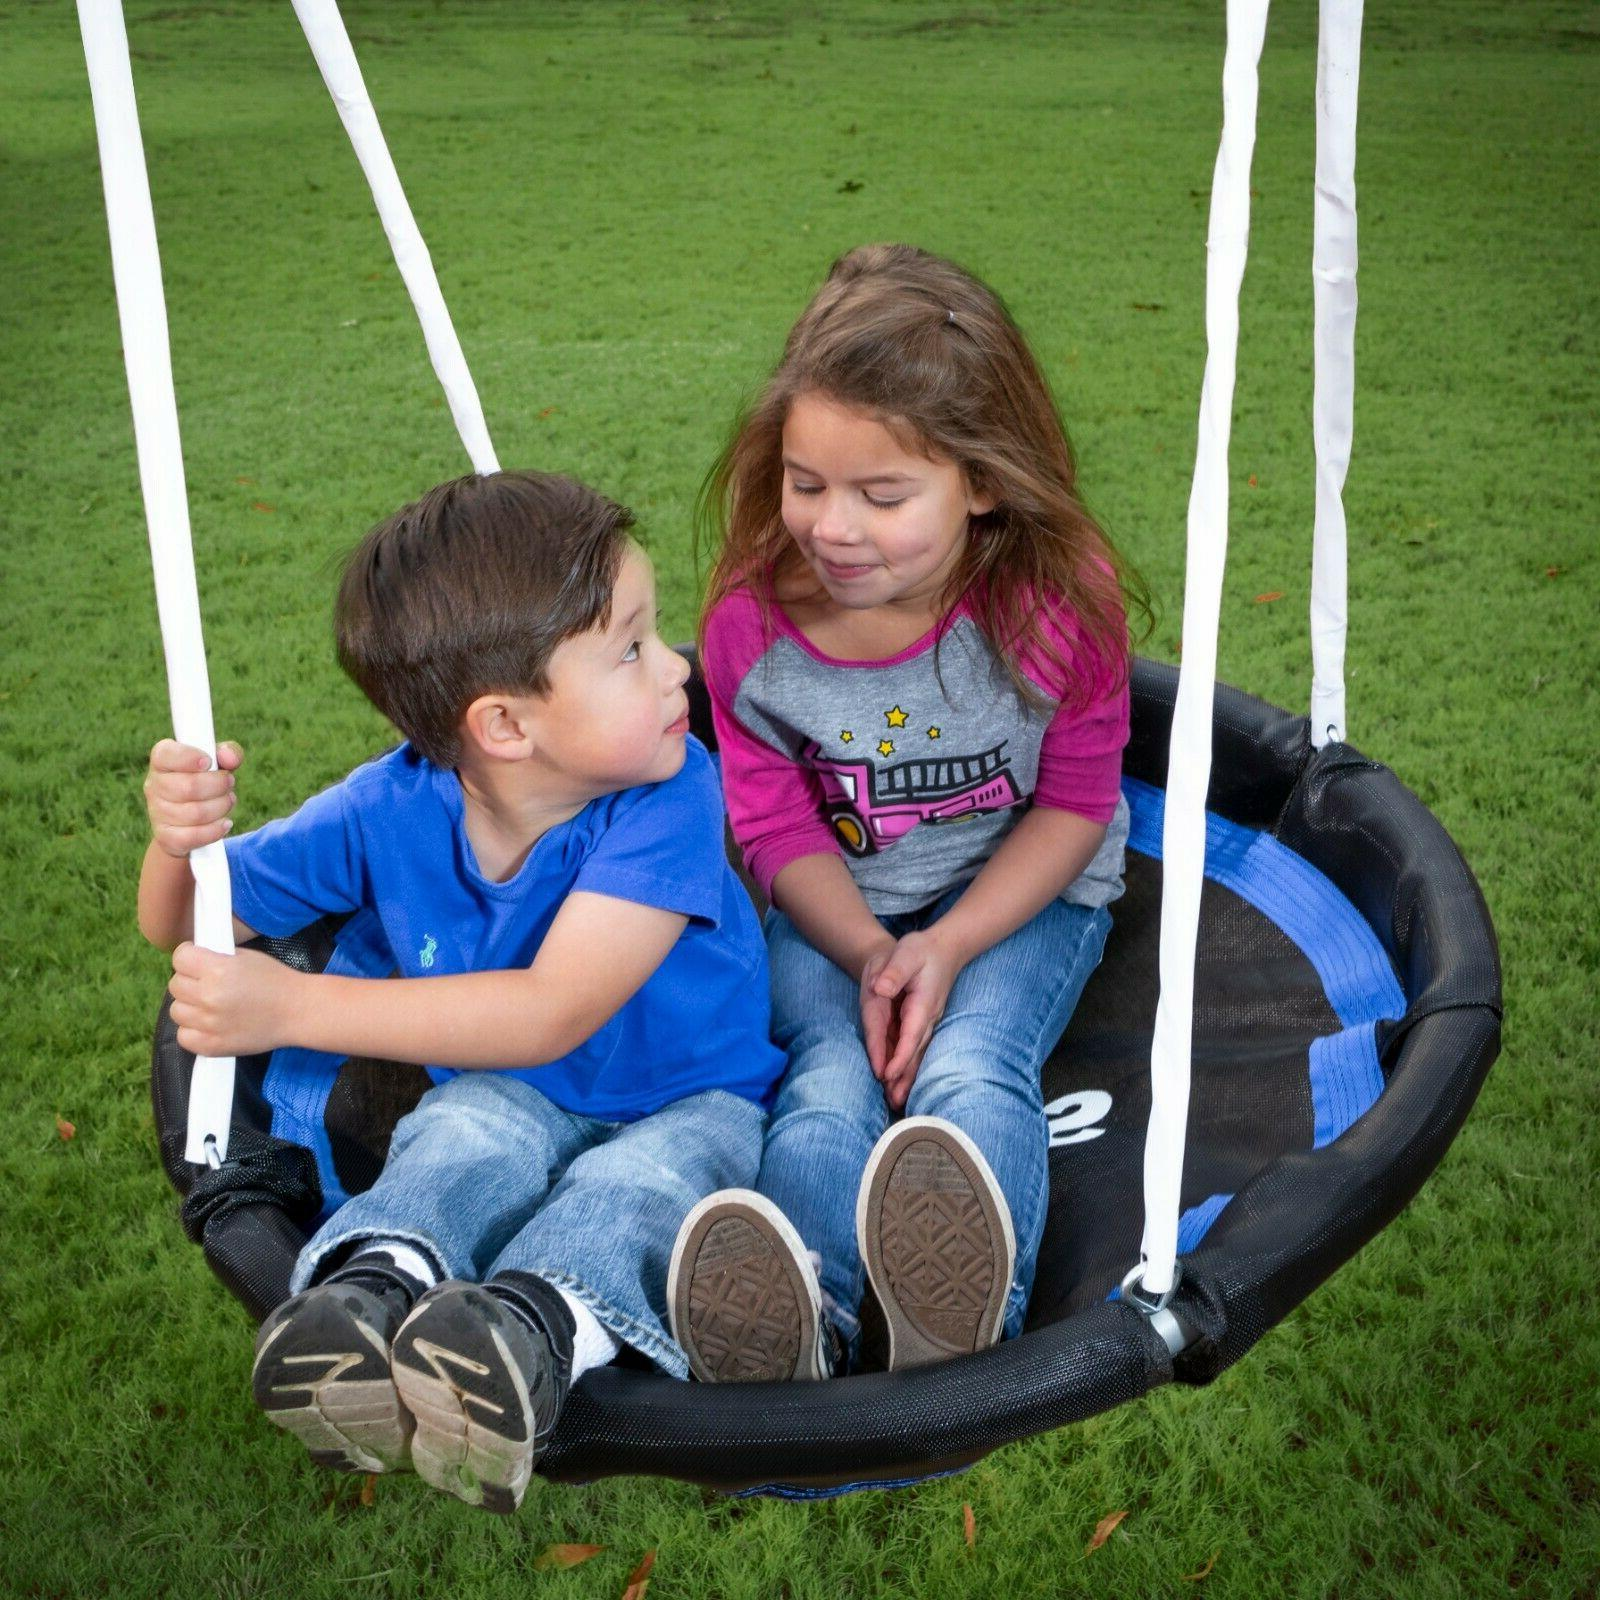 XDP Recreation Fun Galvanized Metal Swing Set